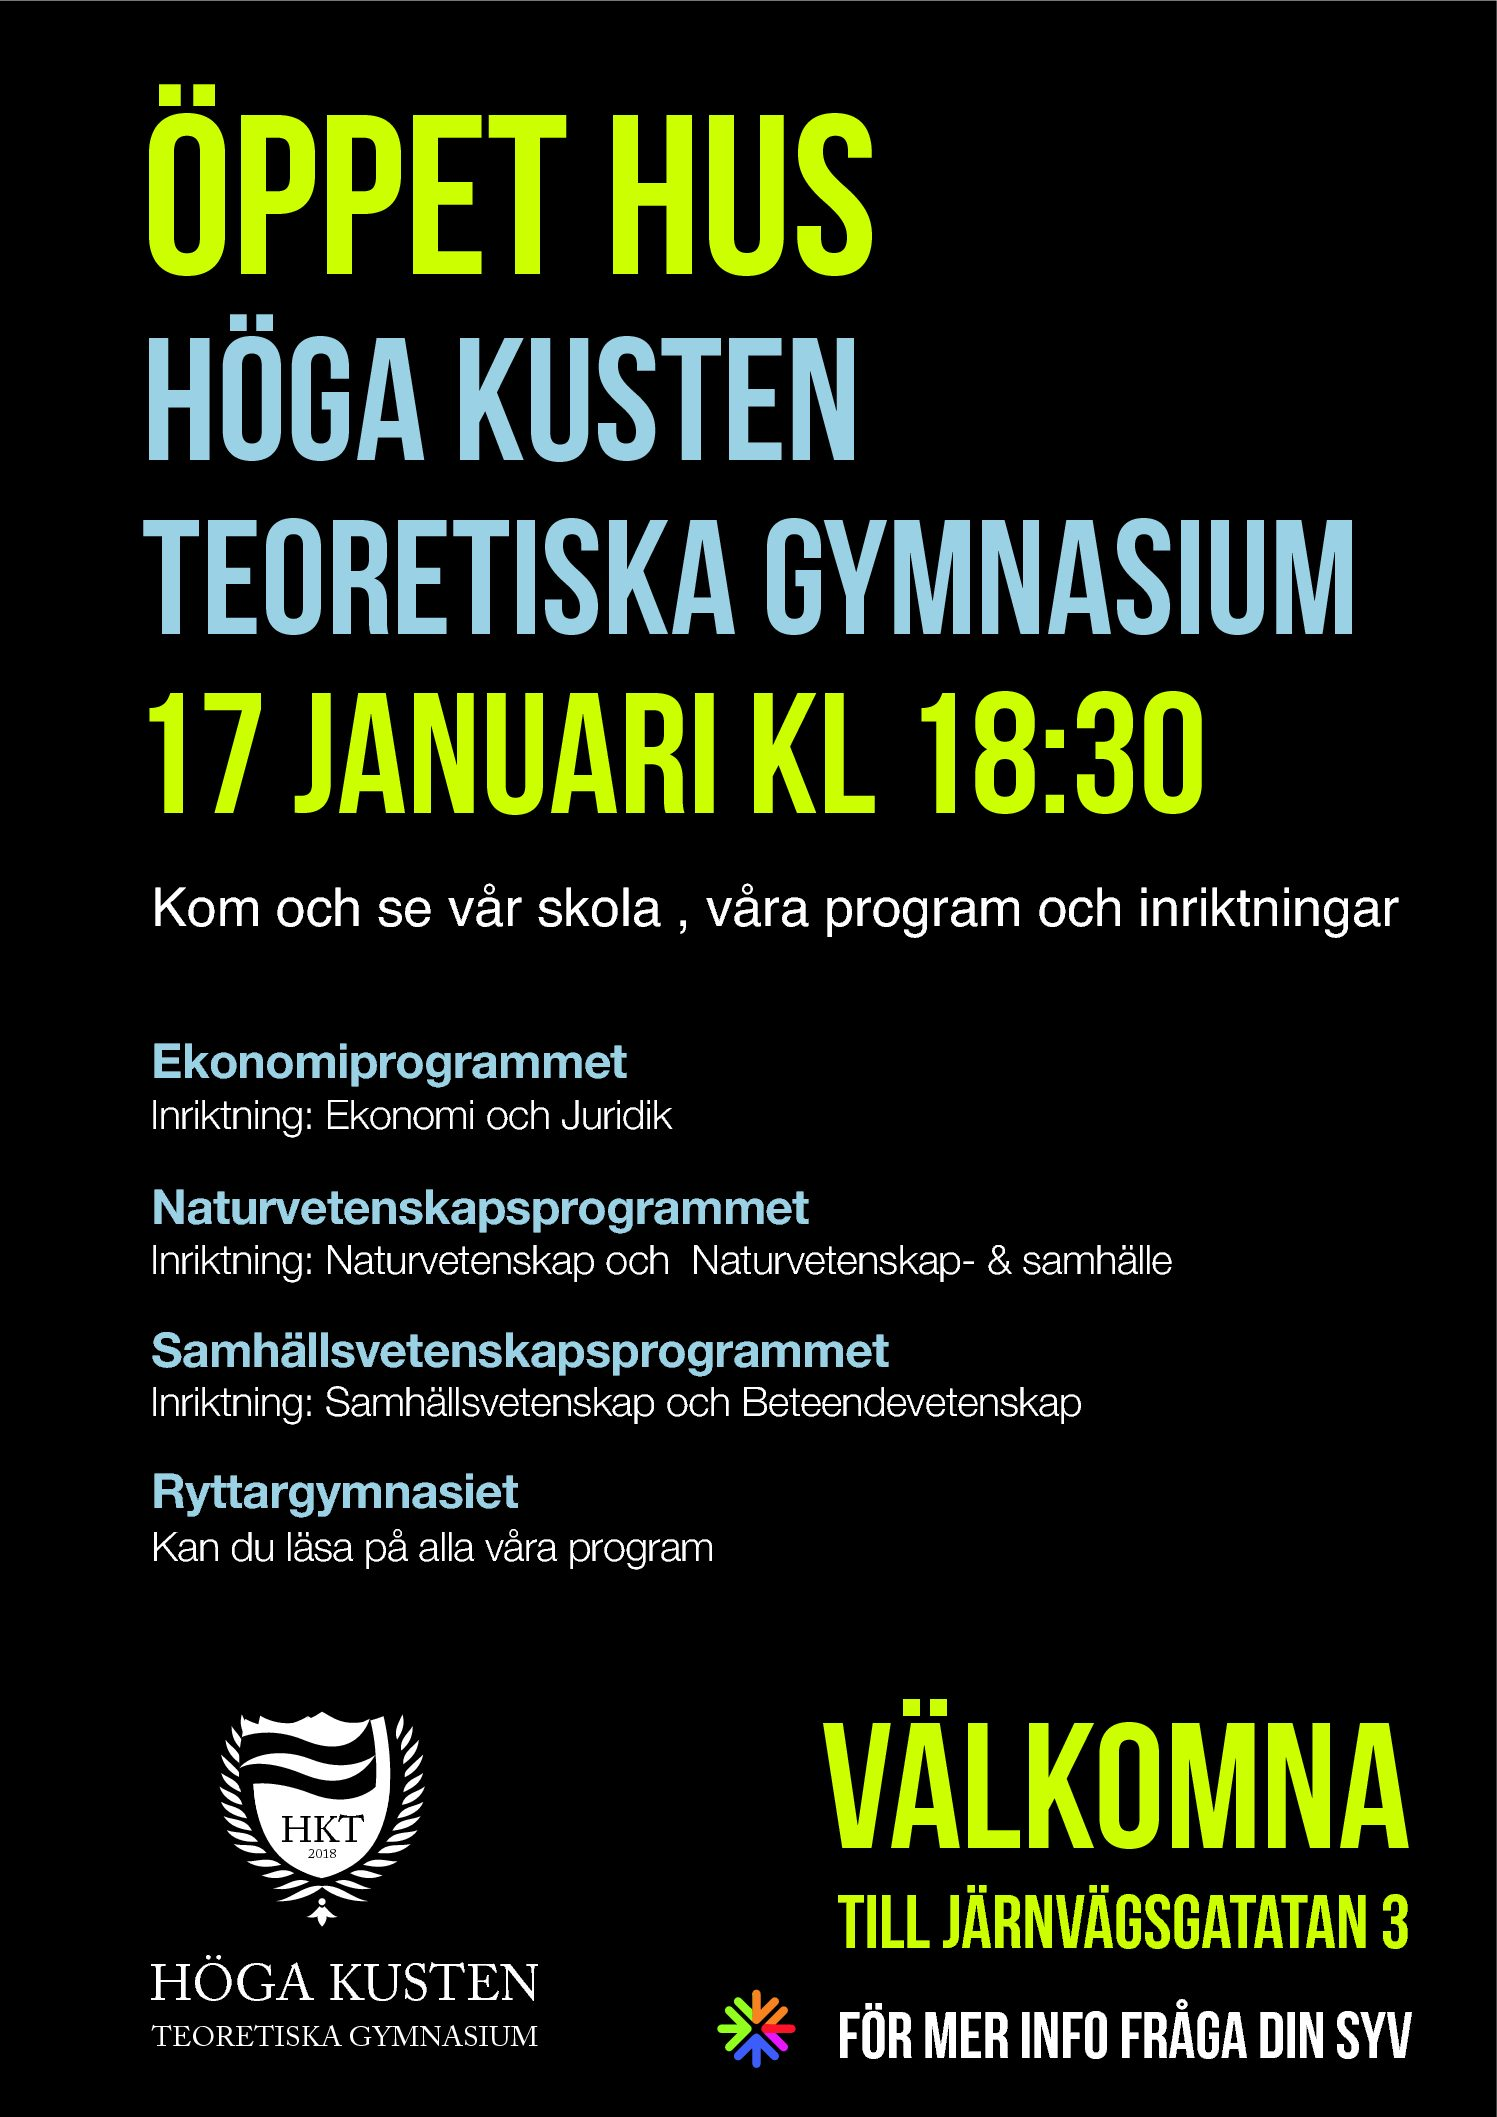 You are currently viewing Öppet hus 17 januari 18:30